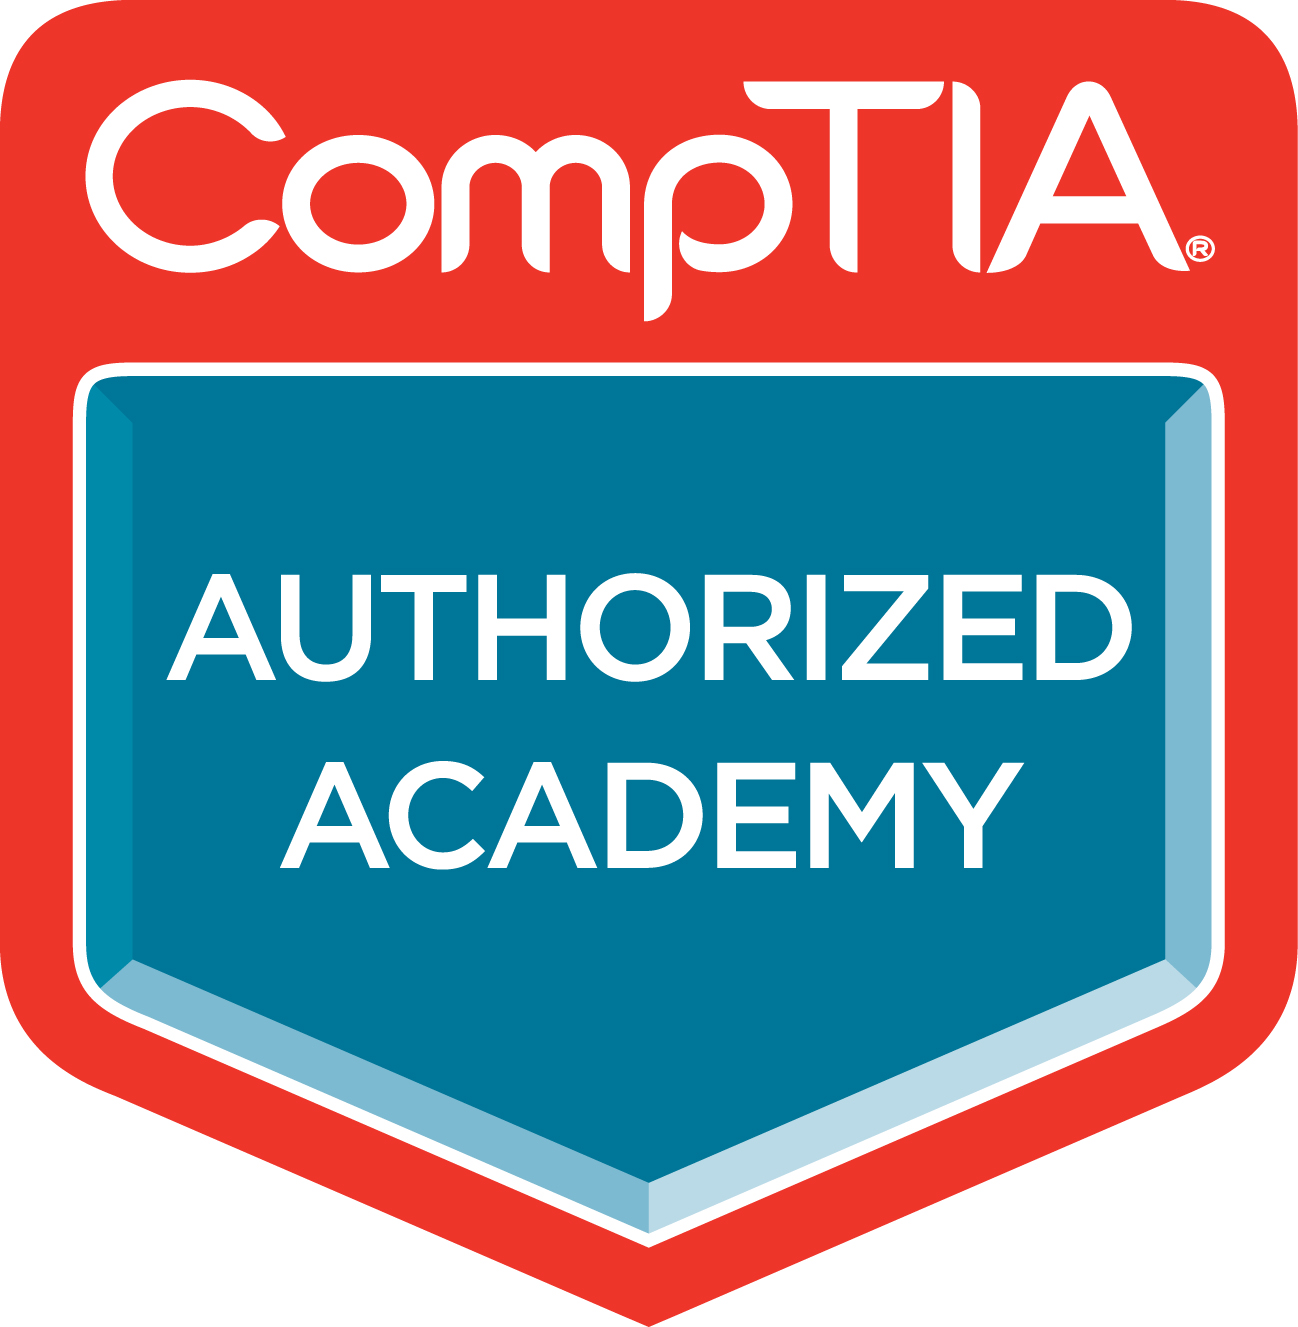 Comptia training certification course in lahore pakistan student comptia training certification course in lahore pakistan student shelter in computers xflitez Image collections